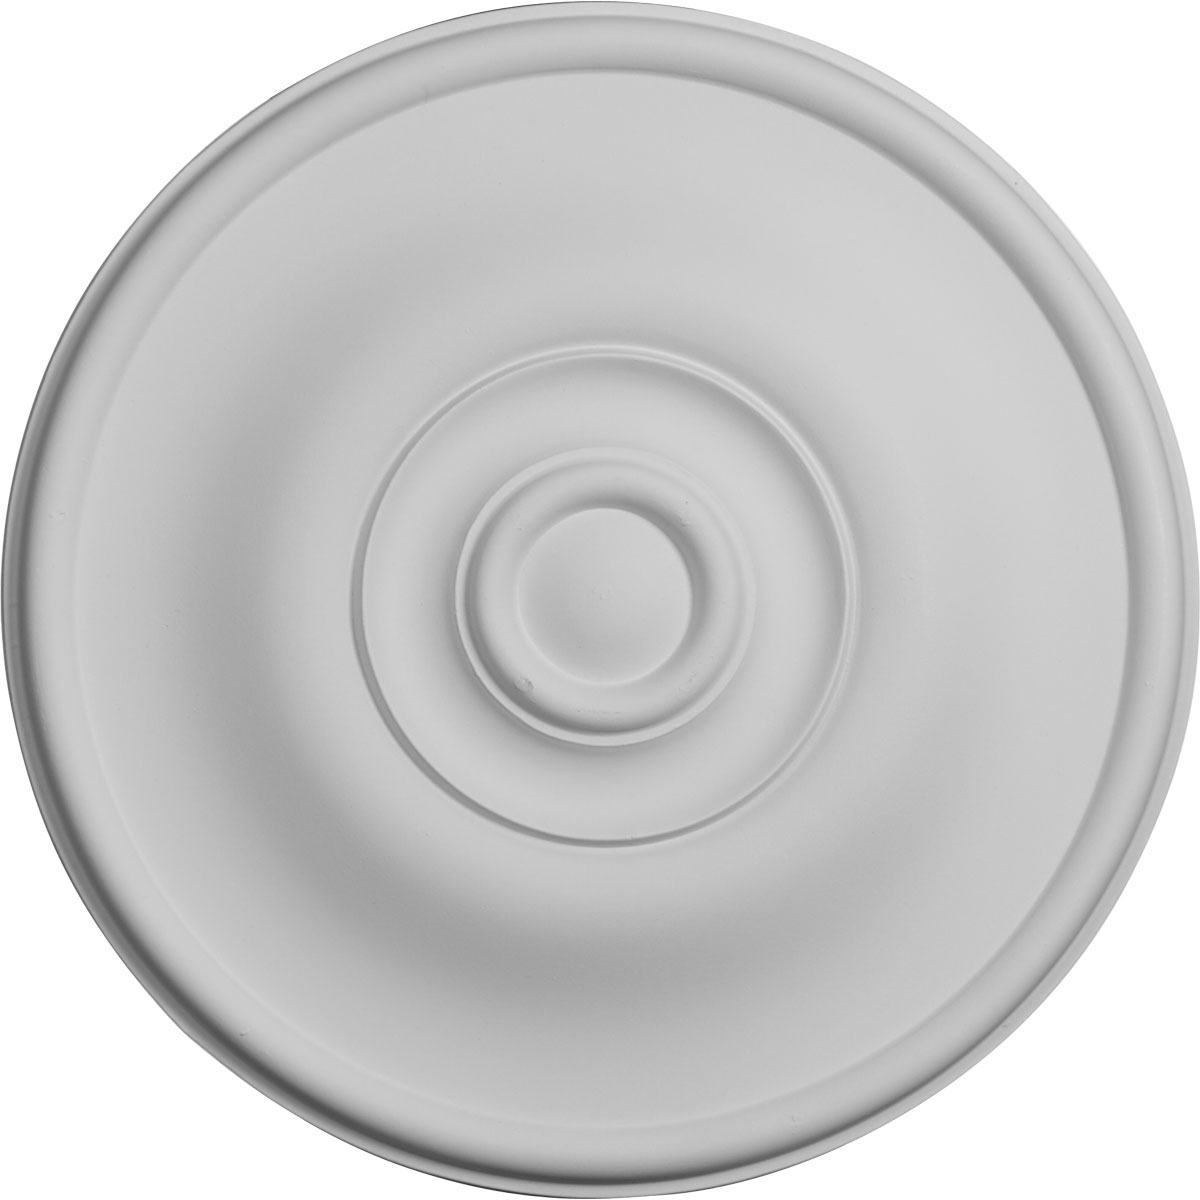 """11 3/4""""OD x 3/8""""P Jefferson Ceiling Medallion (Fits Canopies up to 2 7/8"""")"""